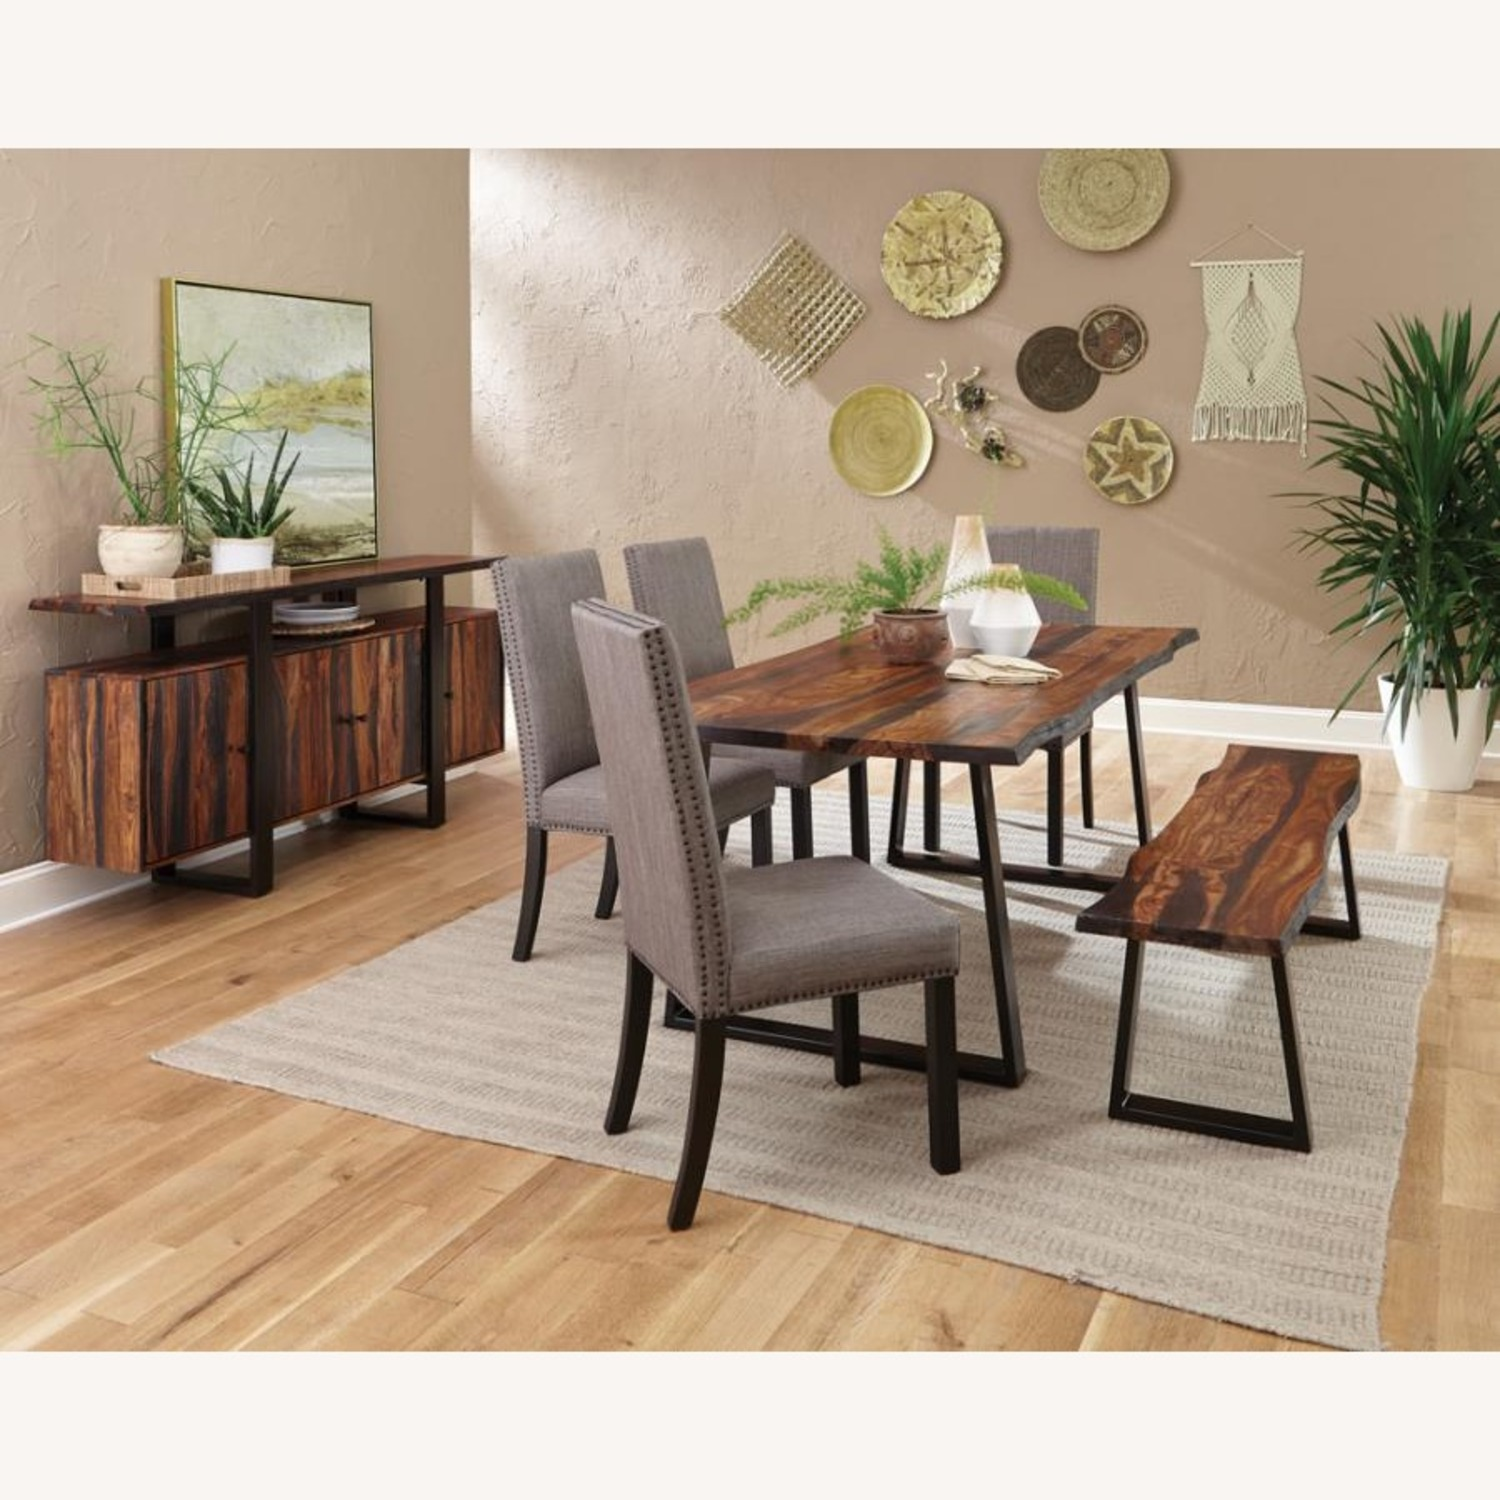 Dining Chair In Grey Linen Upholstery - image-2